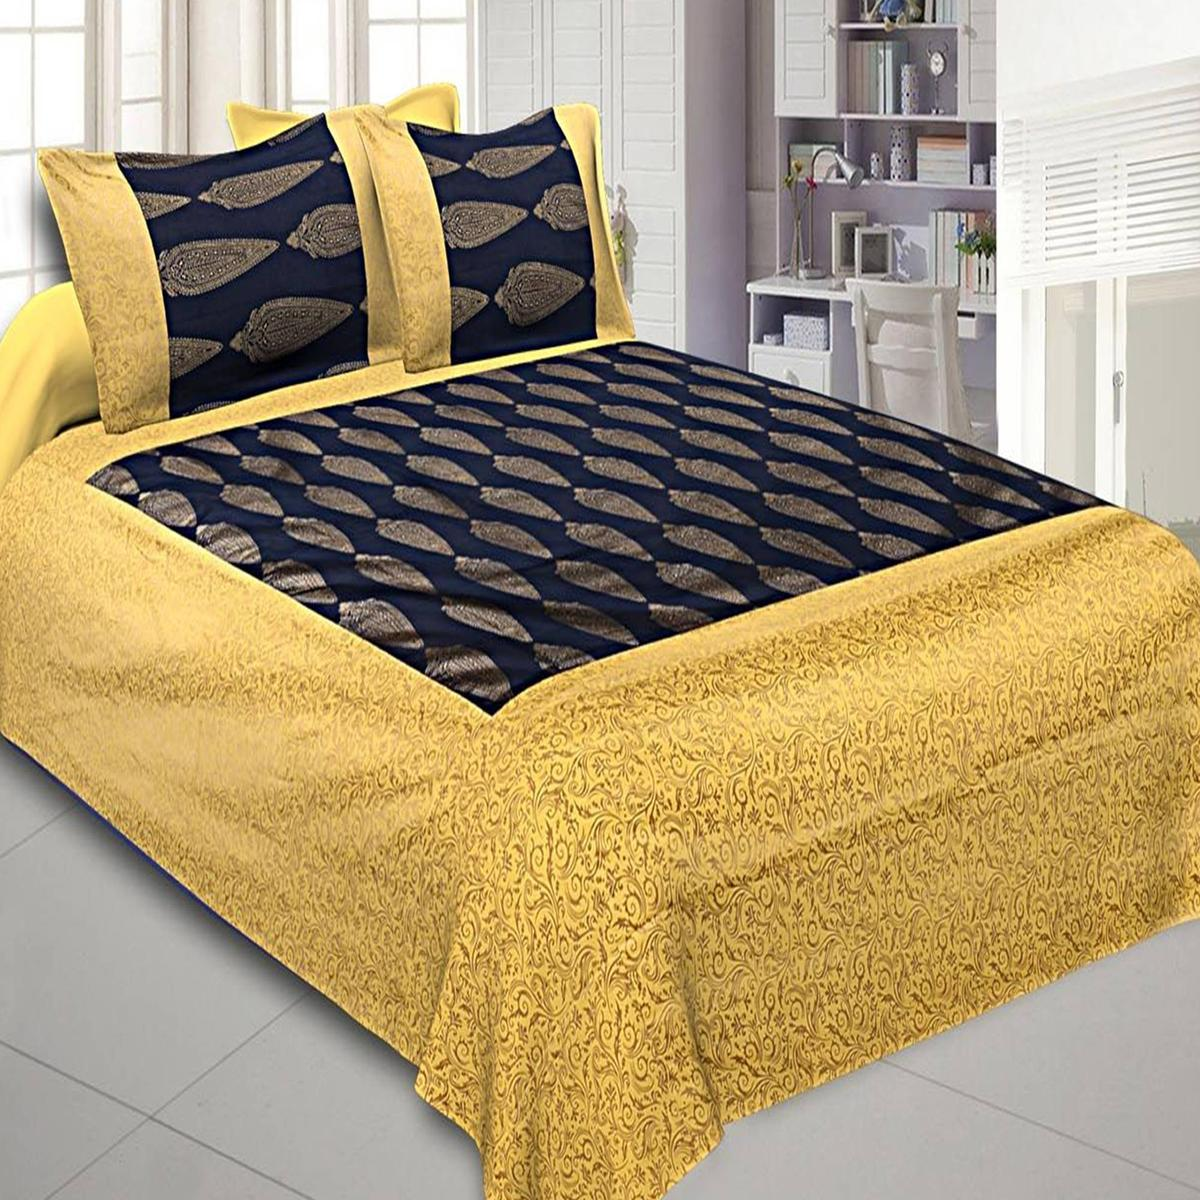 Ideal Navy Blue-Yellow Colored Printed Cotton Double Bedsheet With Pillow Cover